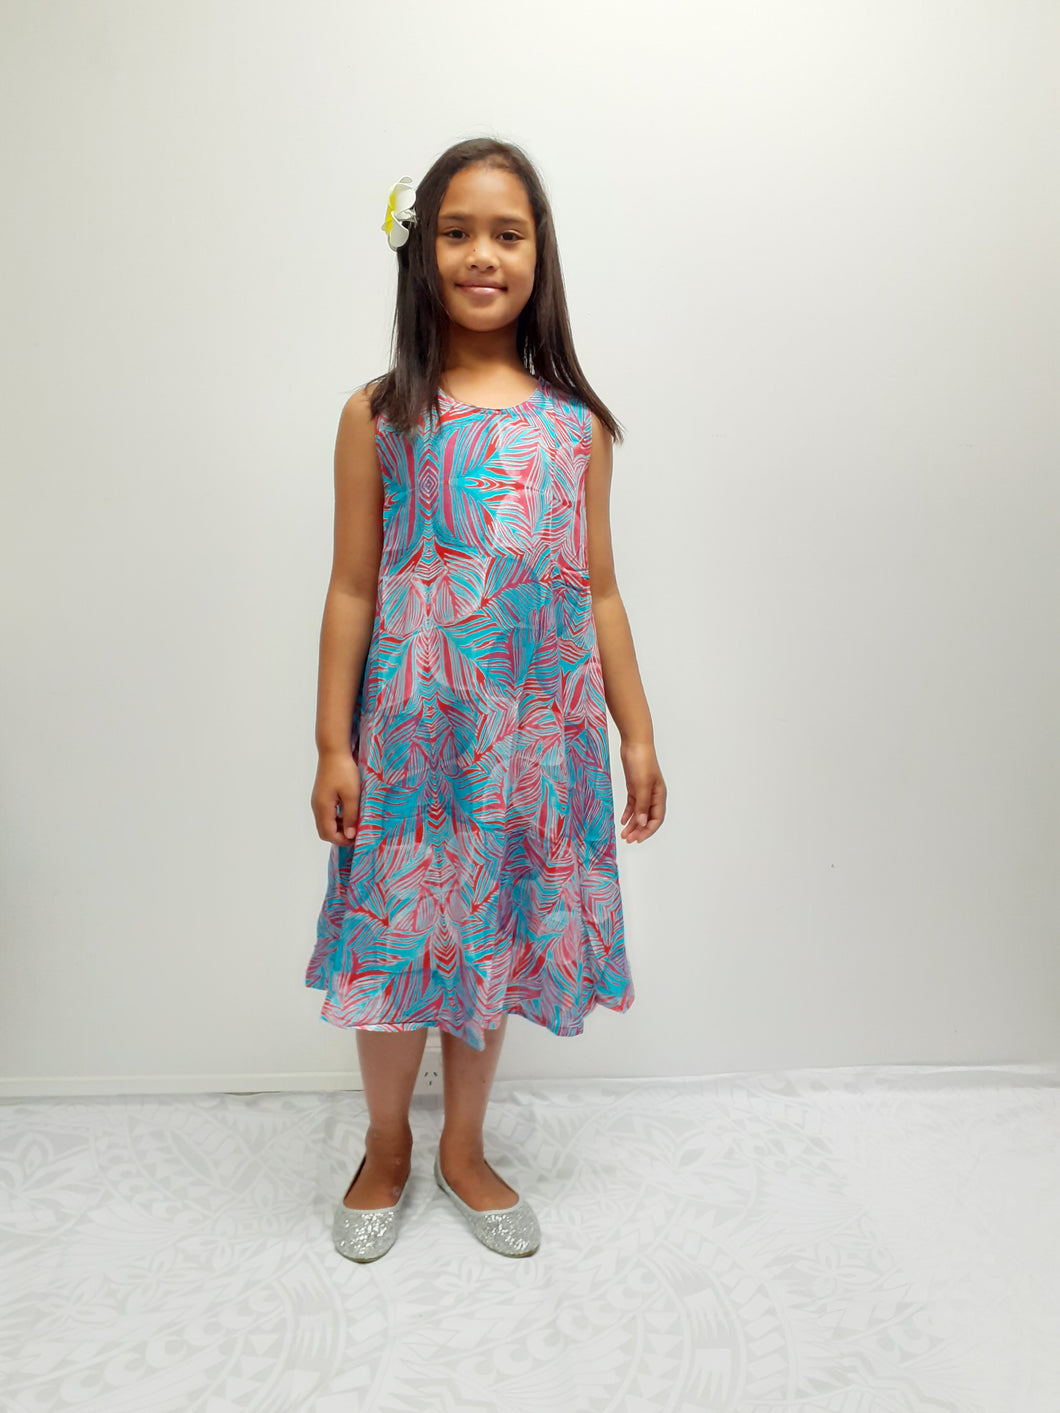 LG872 Girls Dress Coral Blue